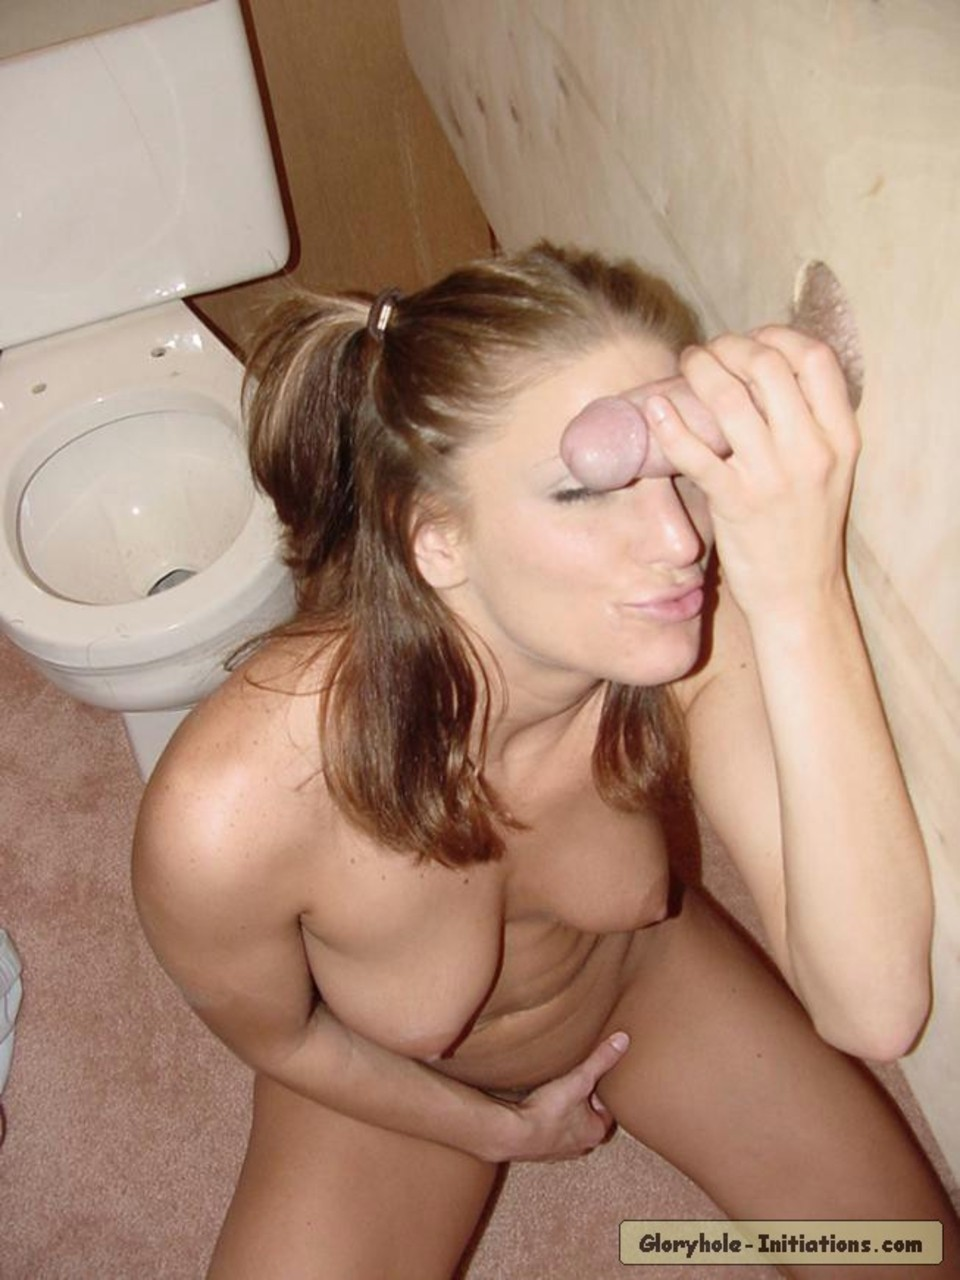 Blonde slut in pigtails goes 1 on 1 with a cock via a bathroom gloryhole